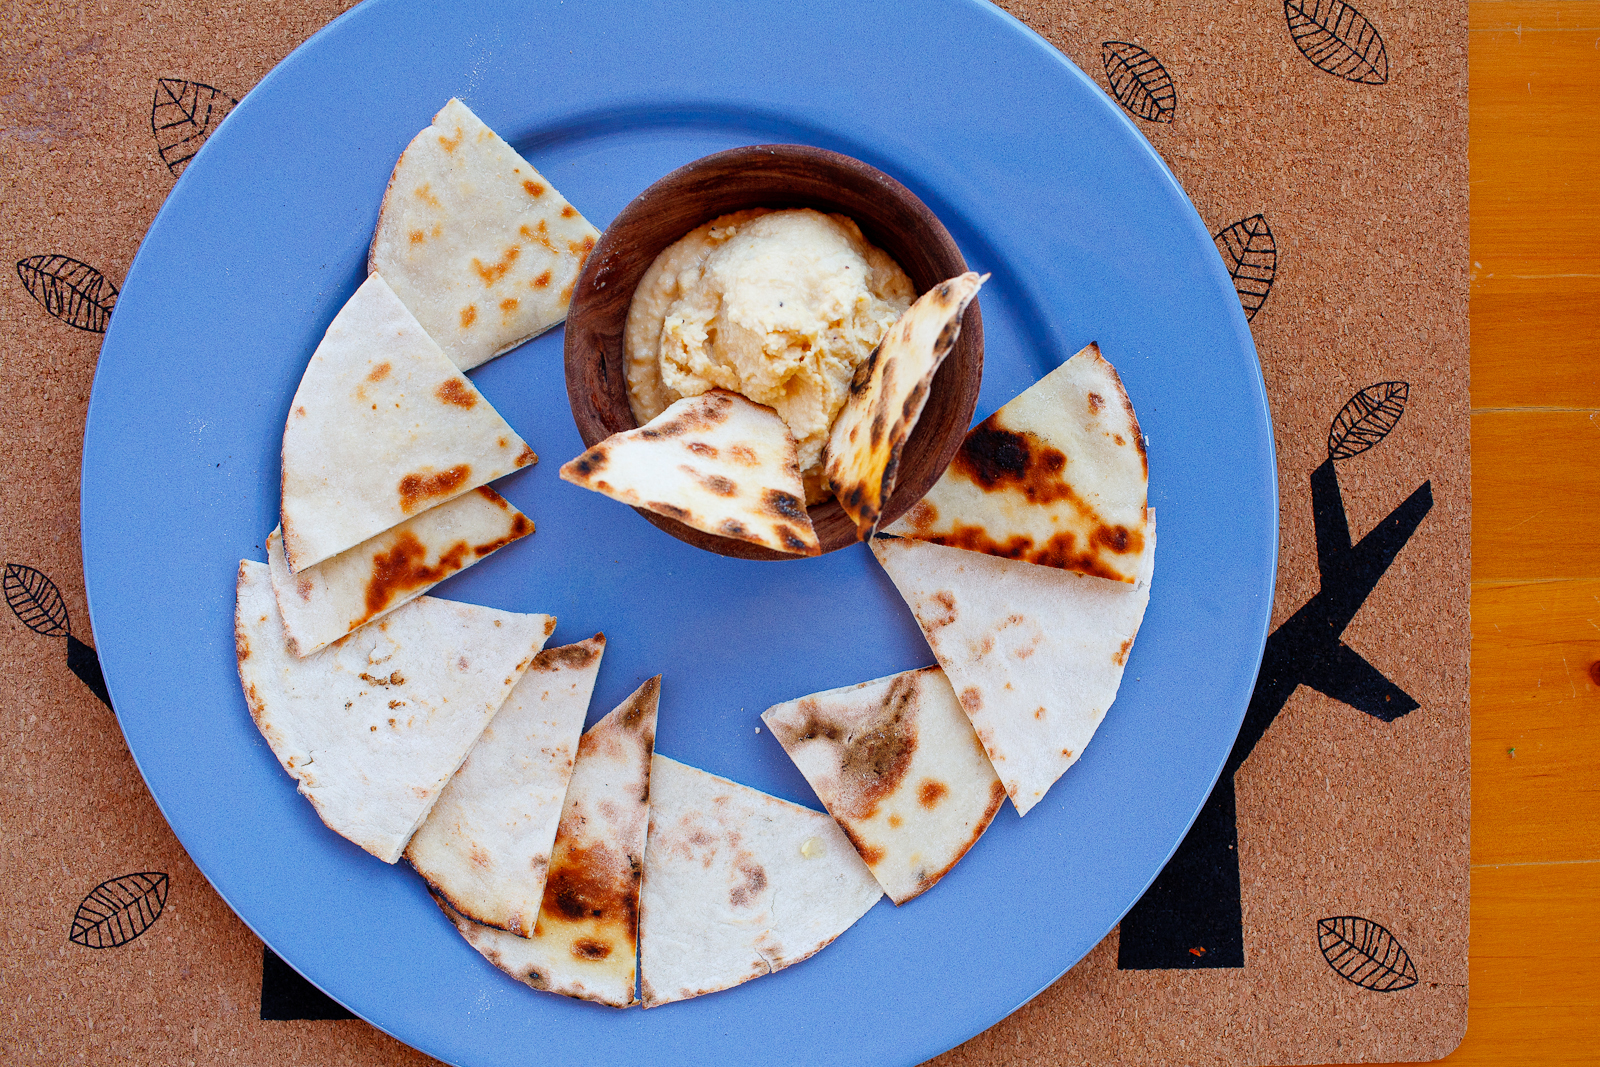 Fire-toasted flatbreads with hummus